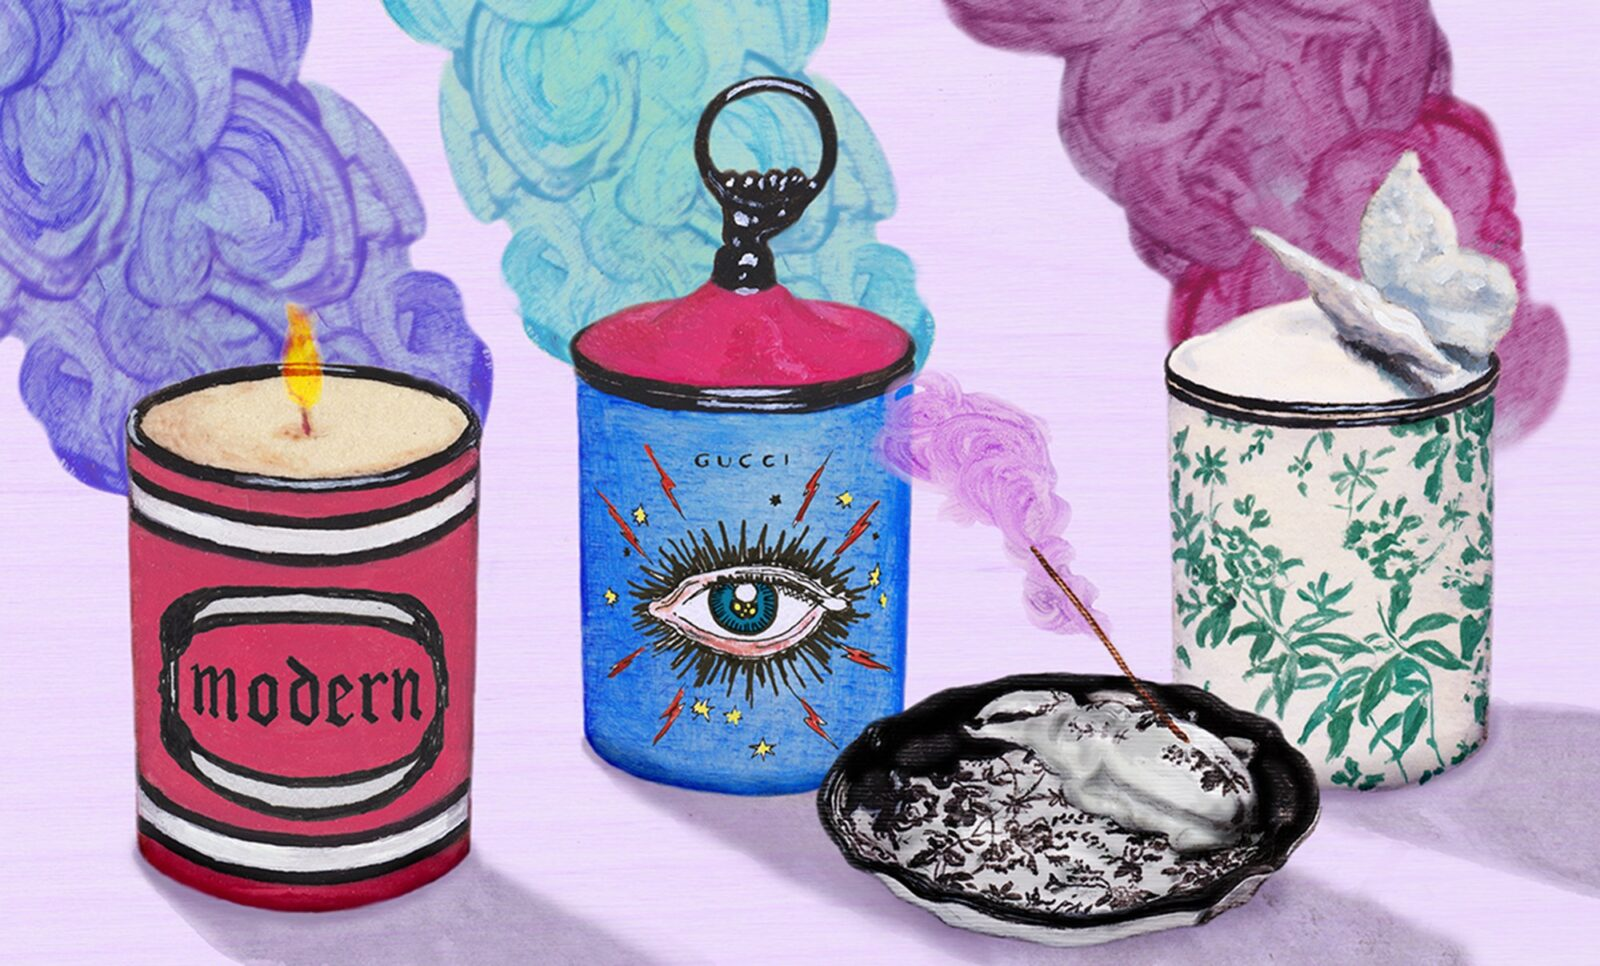 Items from the new home decor collection by Gucci